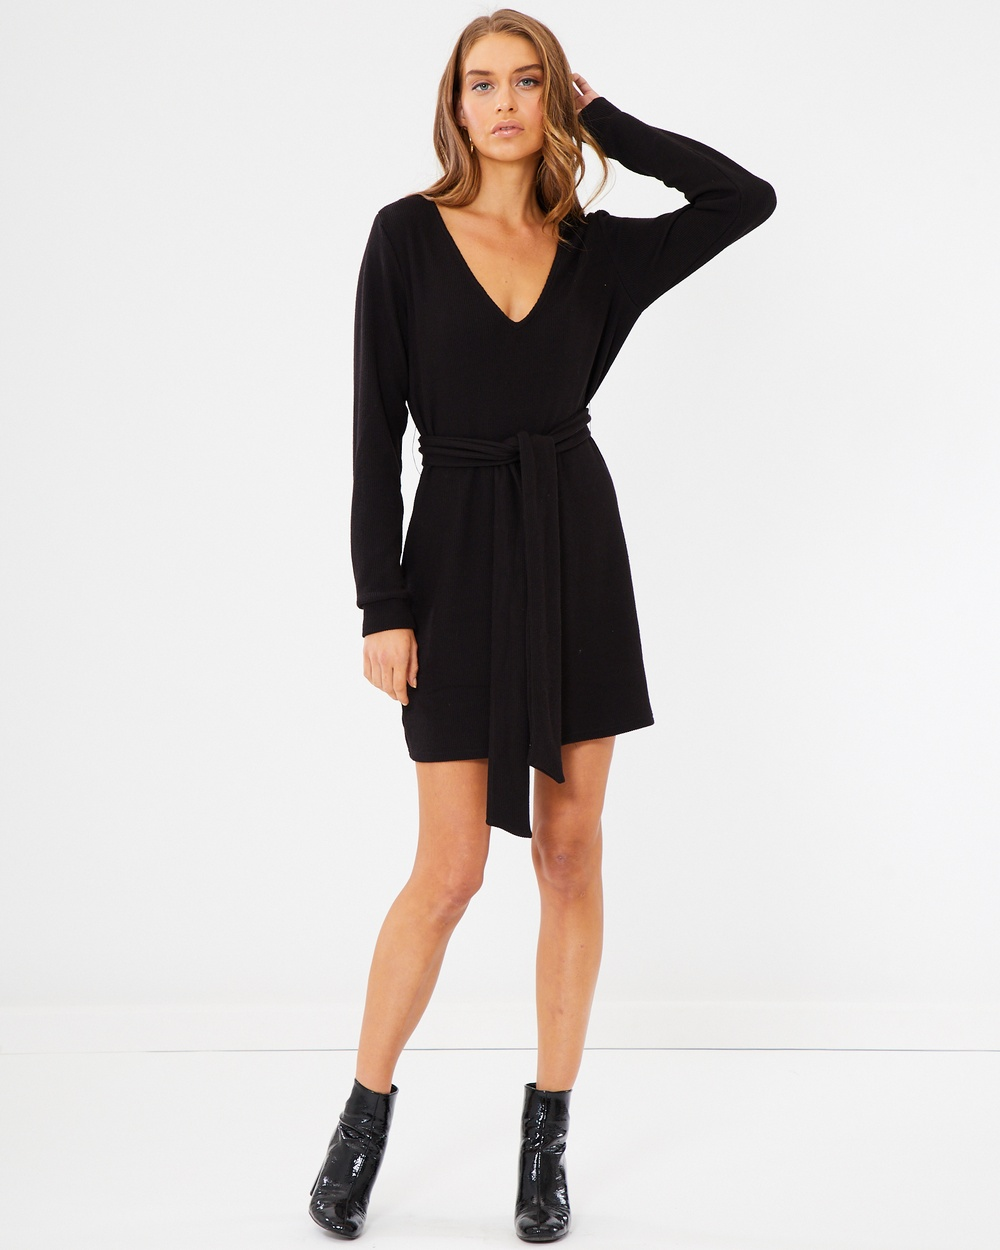 Tussah Meaghan Tie Dress Dresses Black Meaghan Tie Dress